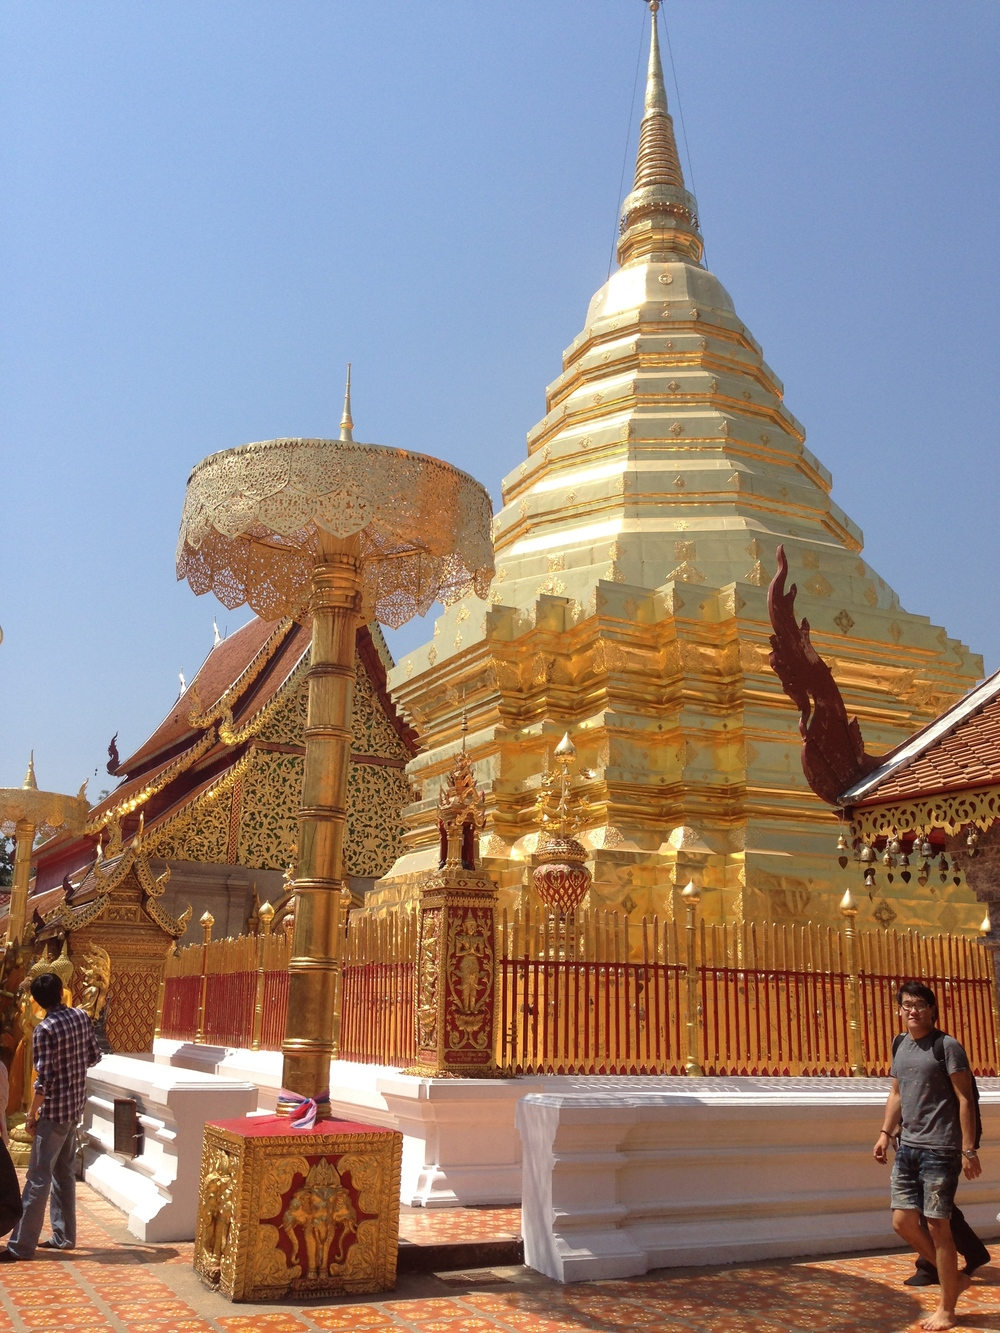 The temple on the hill, Wat Phra That Doi Suthep, offers a taste of Buddhist history and spectacular views over the city